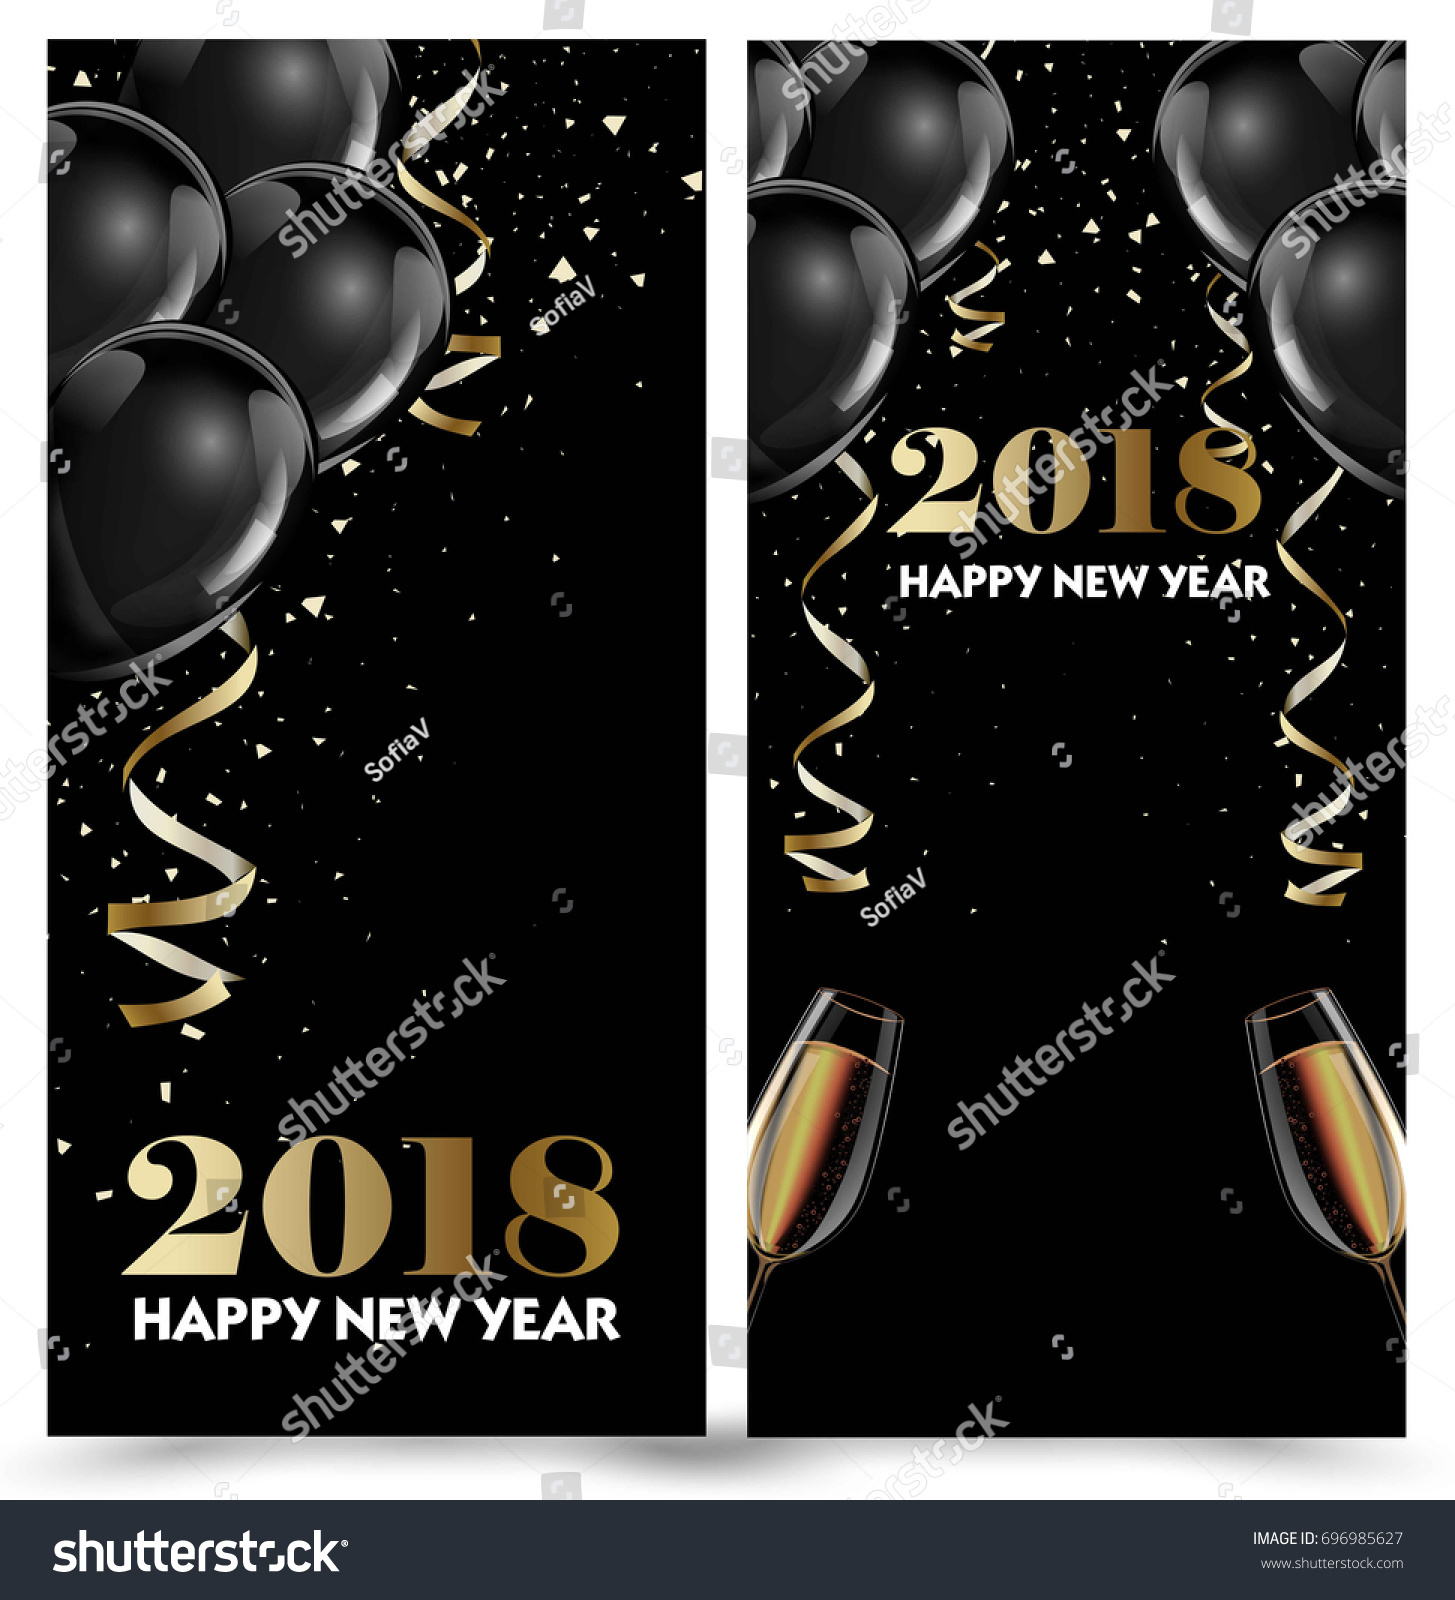 happy new year 2018 greeting card or banner template flyer or invitation design